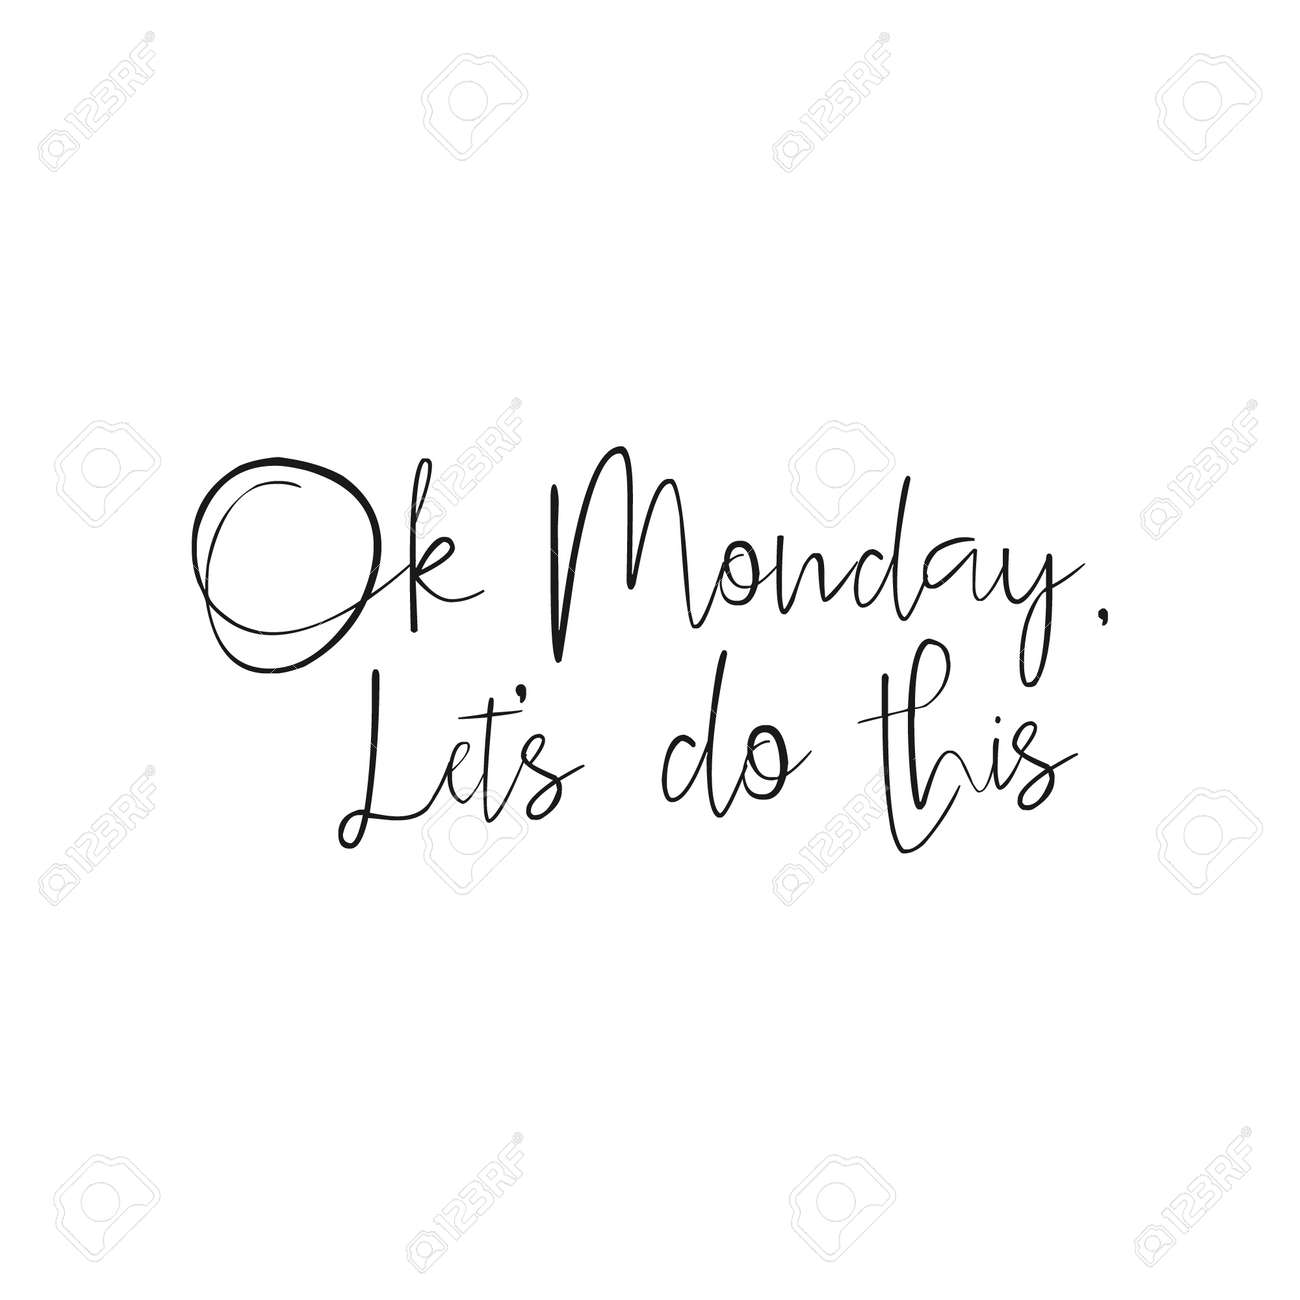 Ok Monday Let's Do This - Hand drawn inspirational quote, start of the week. Vector isolated Brush lettering. Hand lettering quote for office workers. Good for poster, t-shirt, print, card, banner. - 52984471